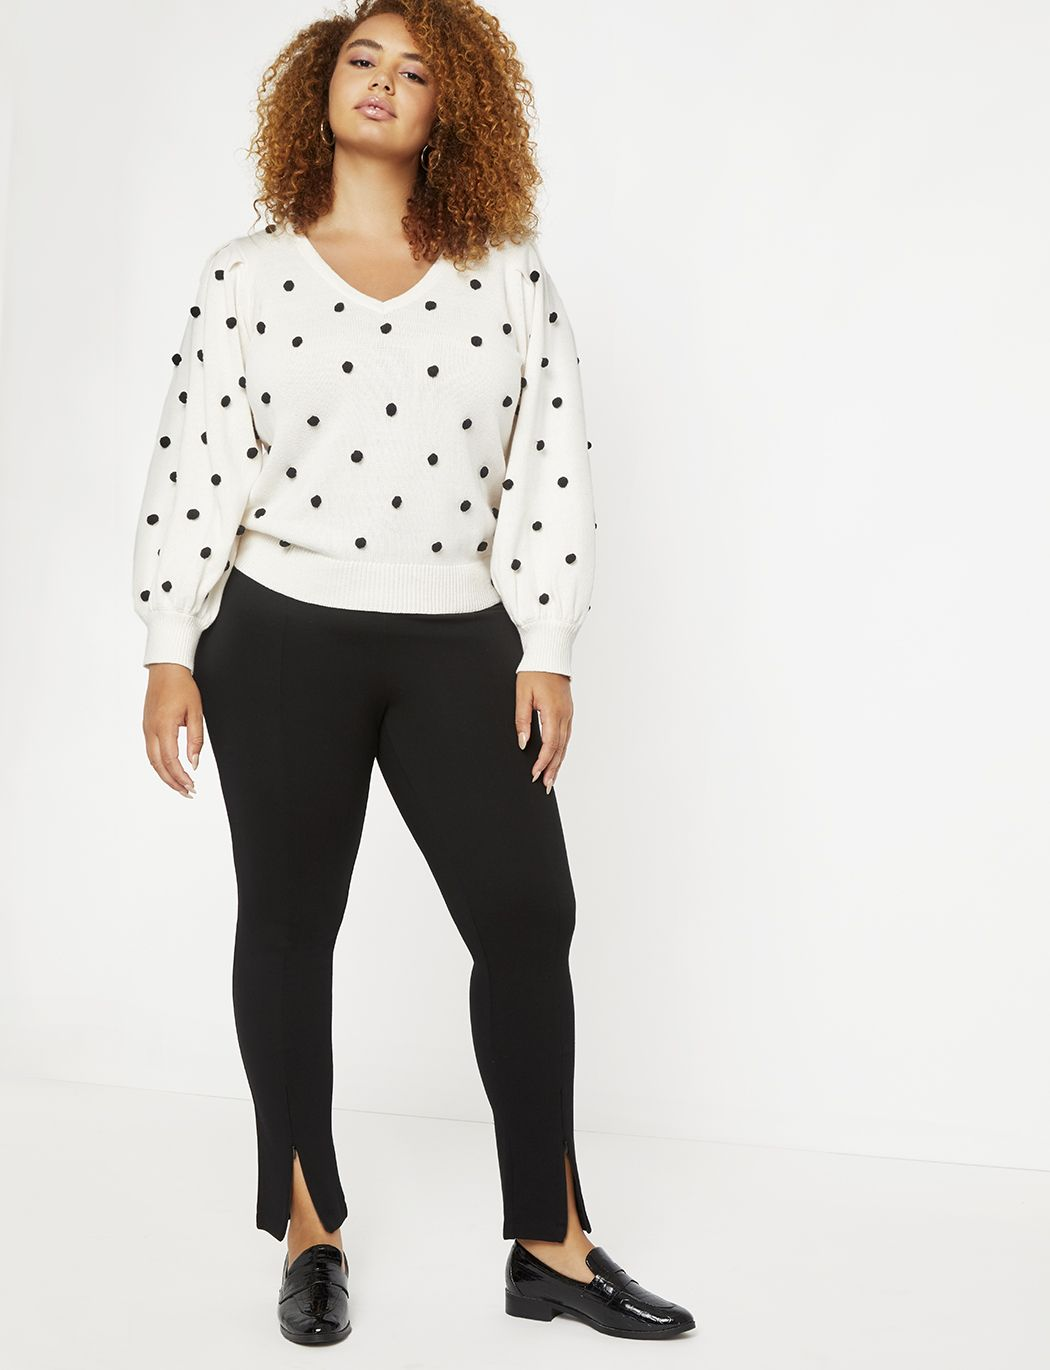 We'd Give Up Basic Black Leggings for These 6 Fresh Spring Trends 9